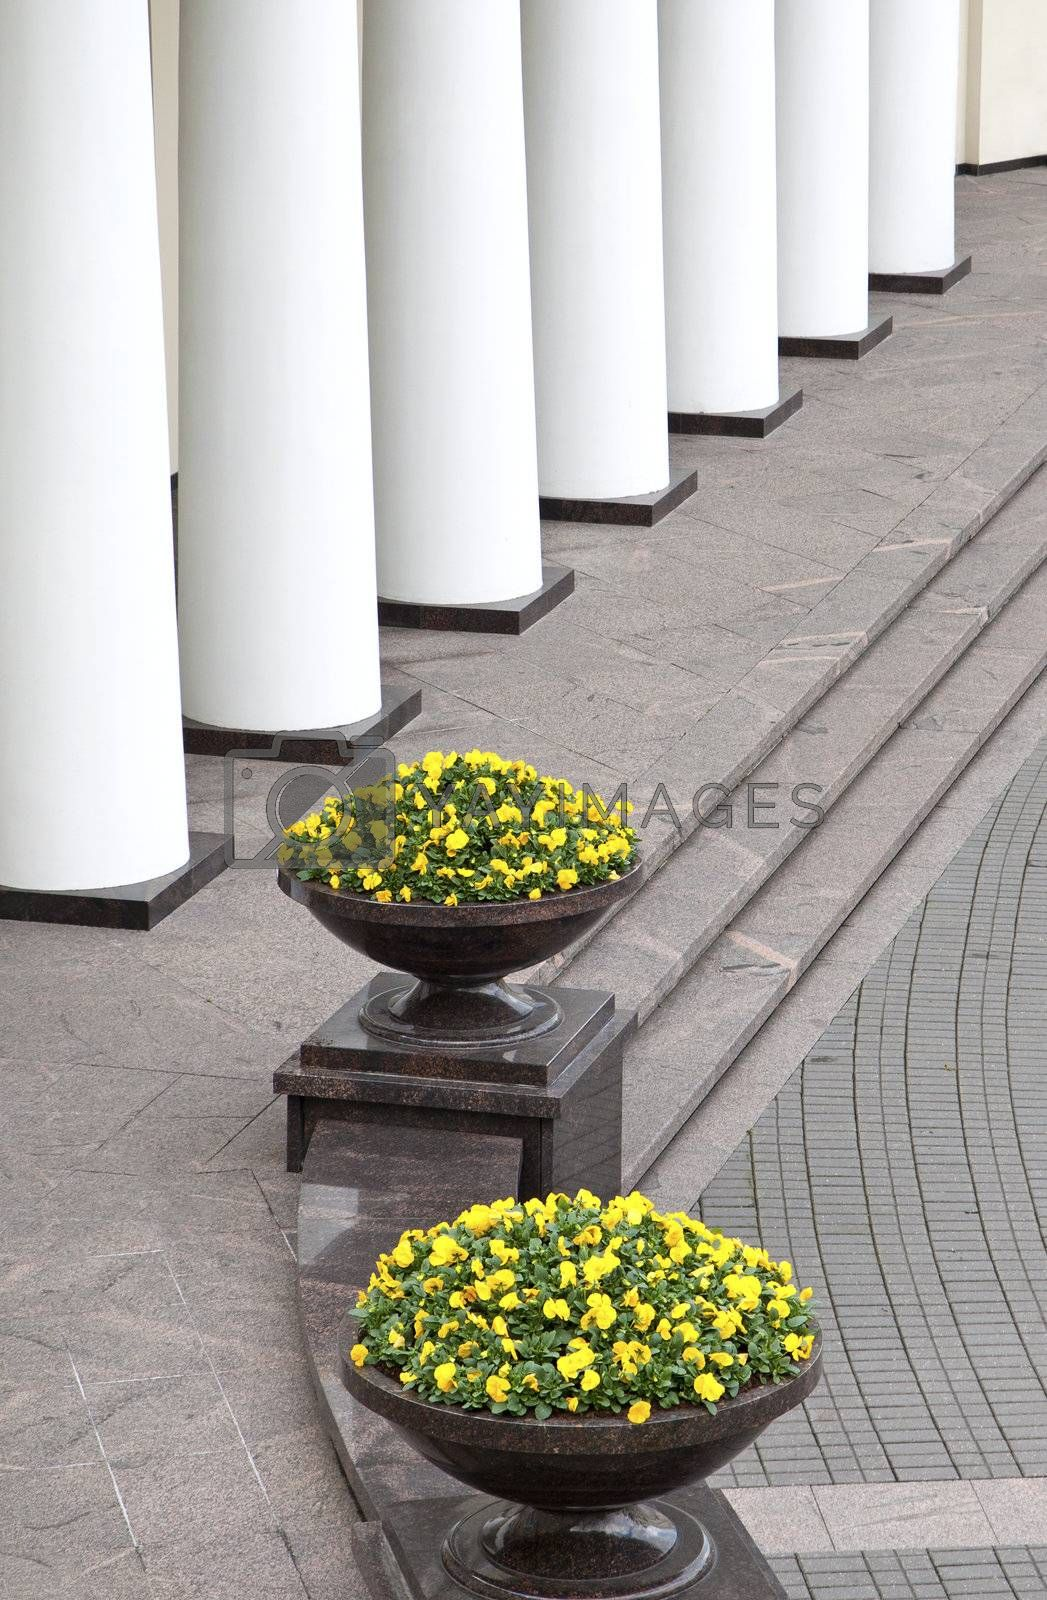 Clasical style collonade and flower pots with yellow buds